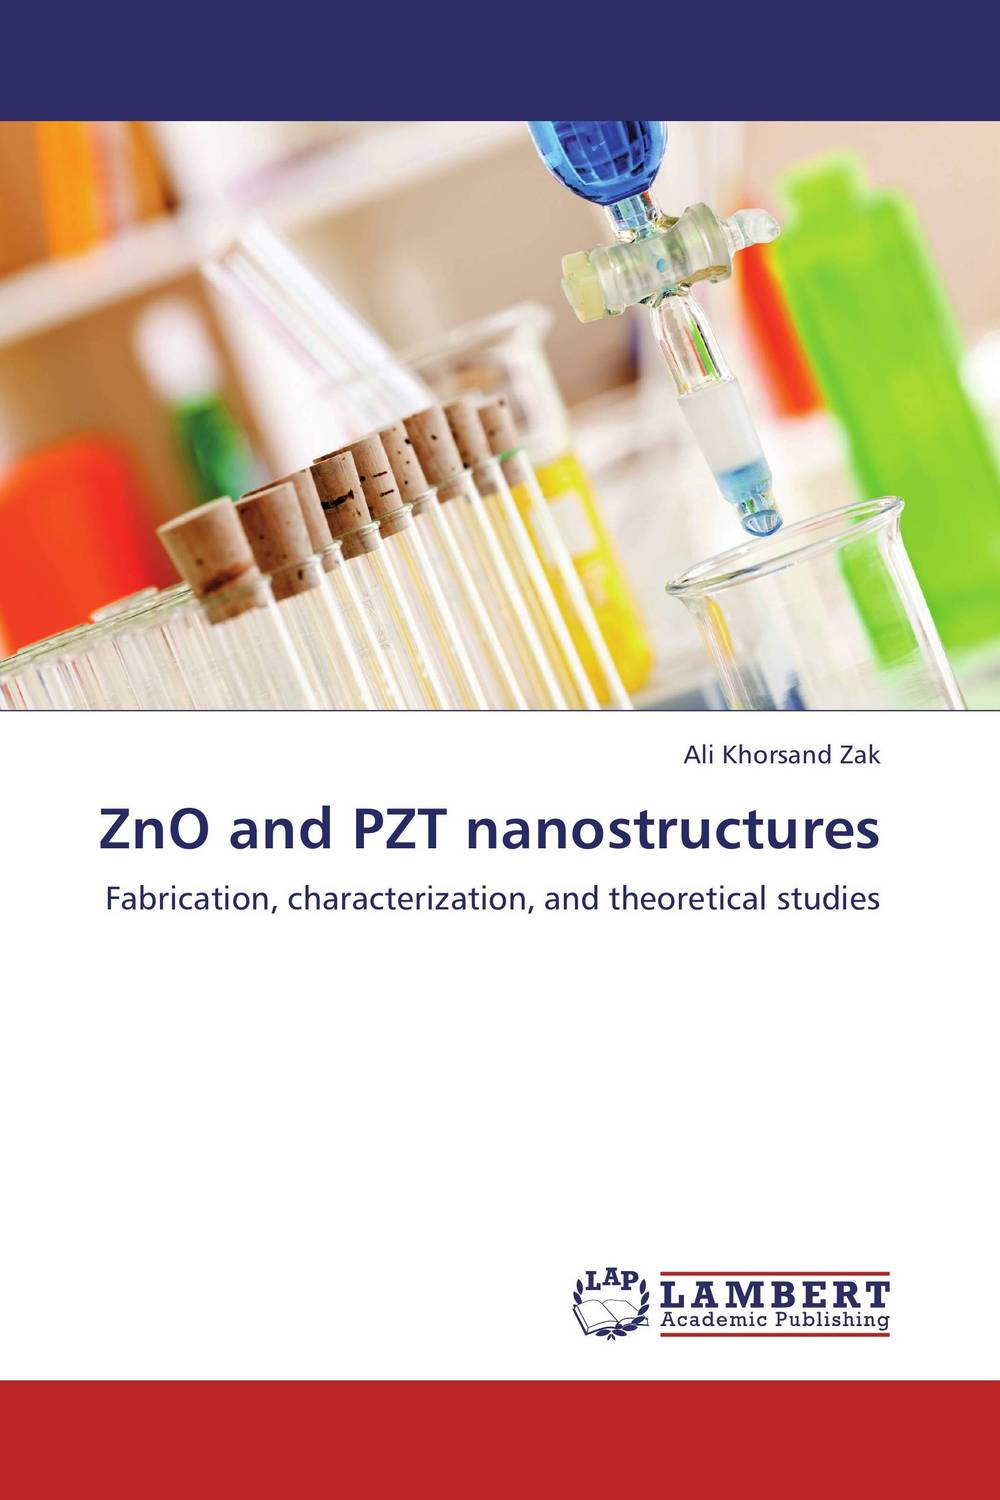 ZnO and PZT nanostructures dennis hall g boronic acids preparation and applications in organic synthesis medicine and materials